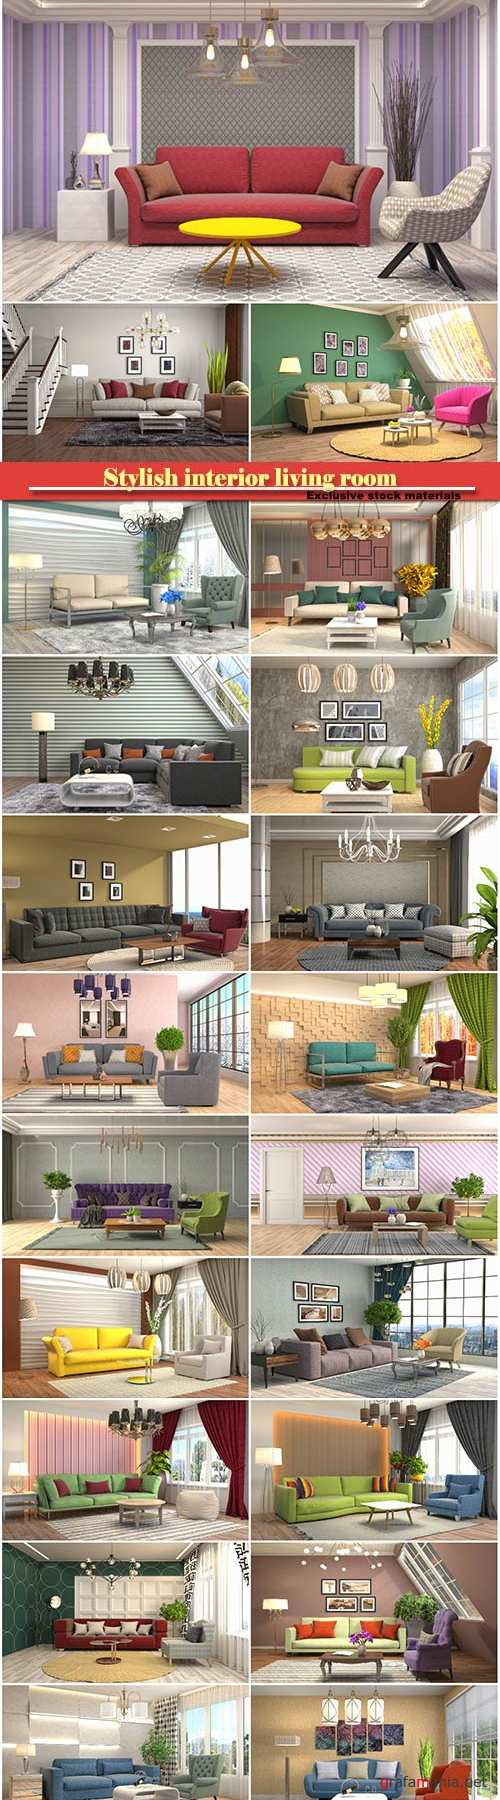 Stylish interior living room, 3d illustration